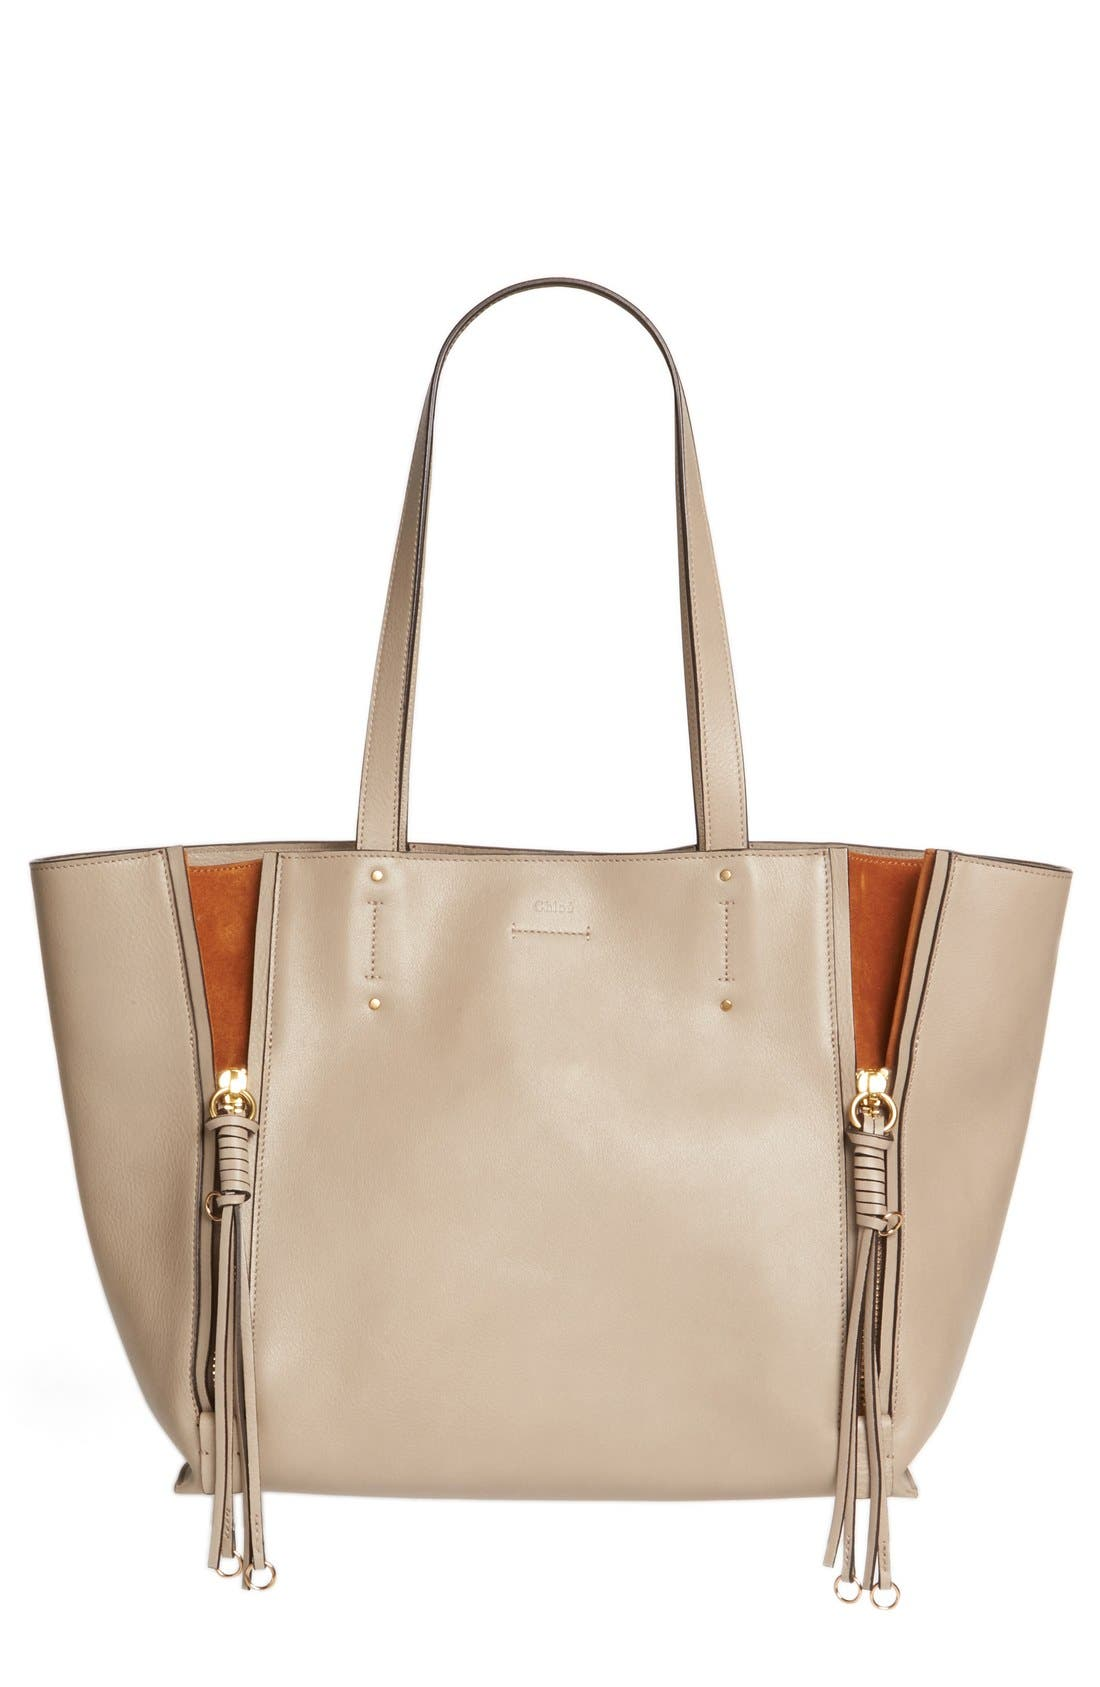 Chloé Medium Milo Calfskin Leather Tote